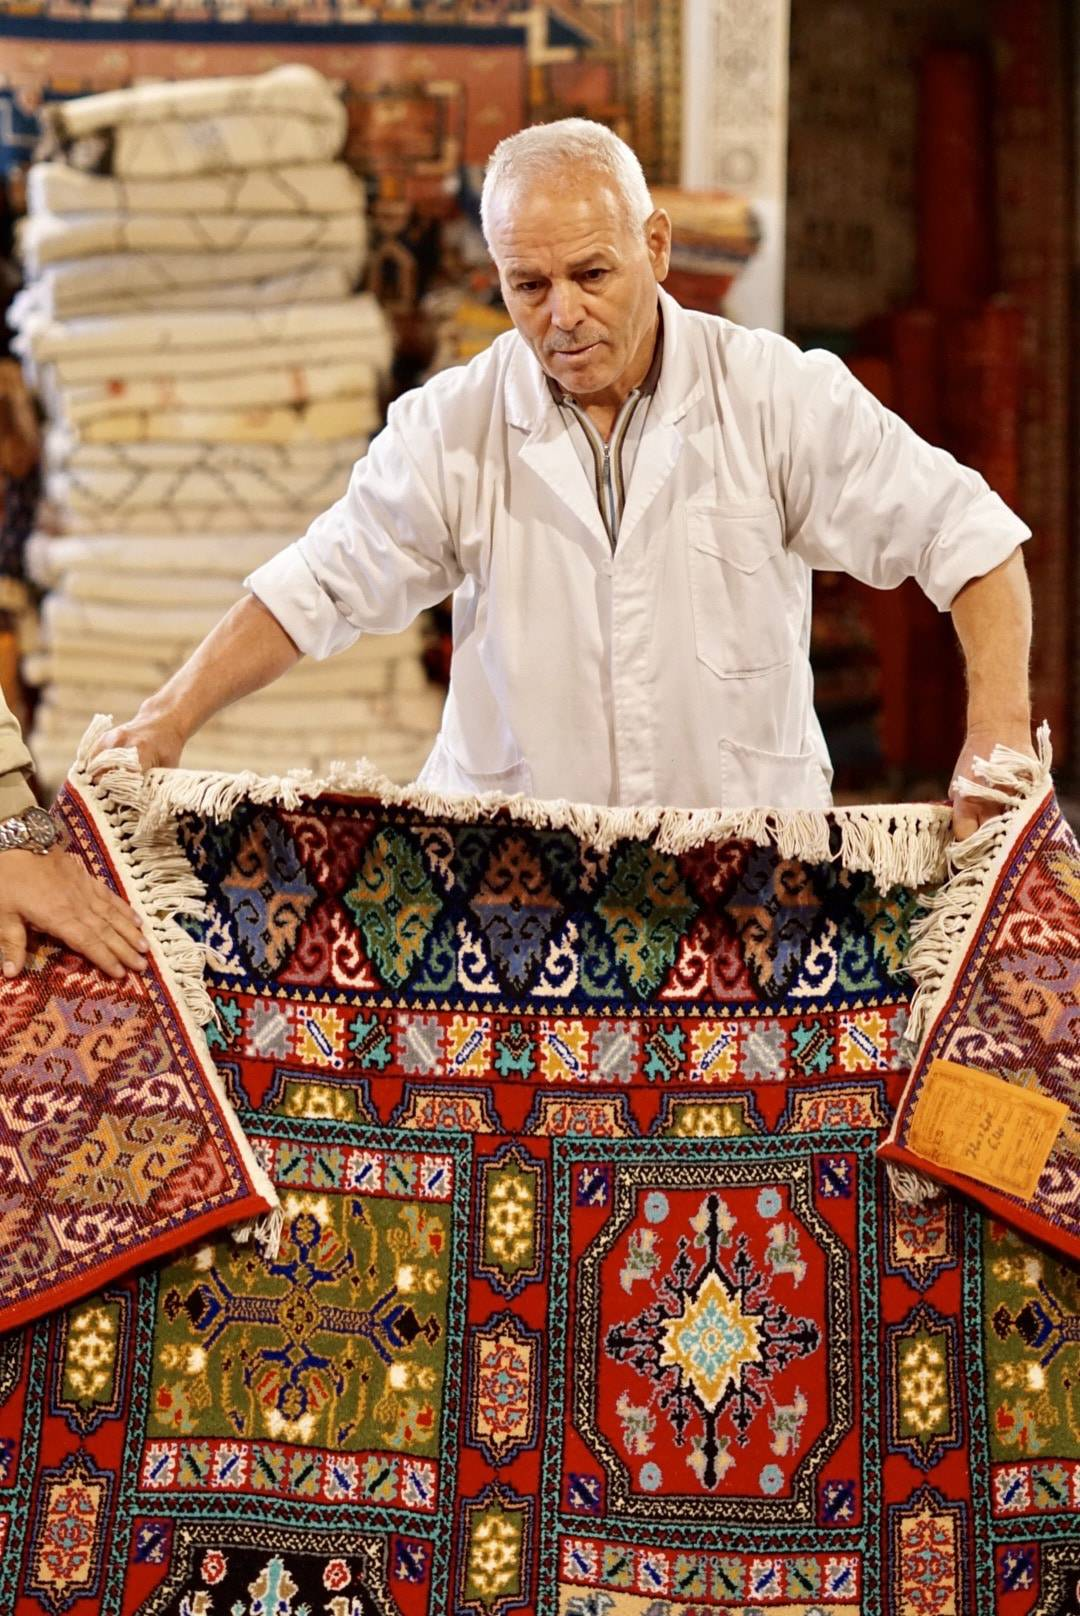 Rug Shopping in Fes, Morocco